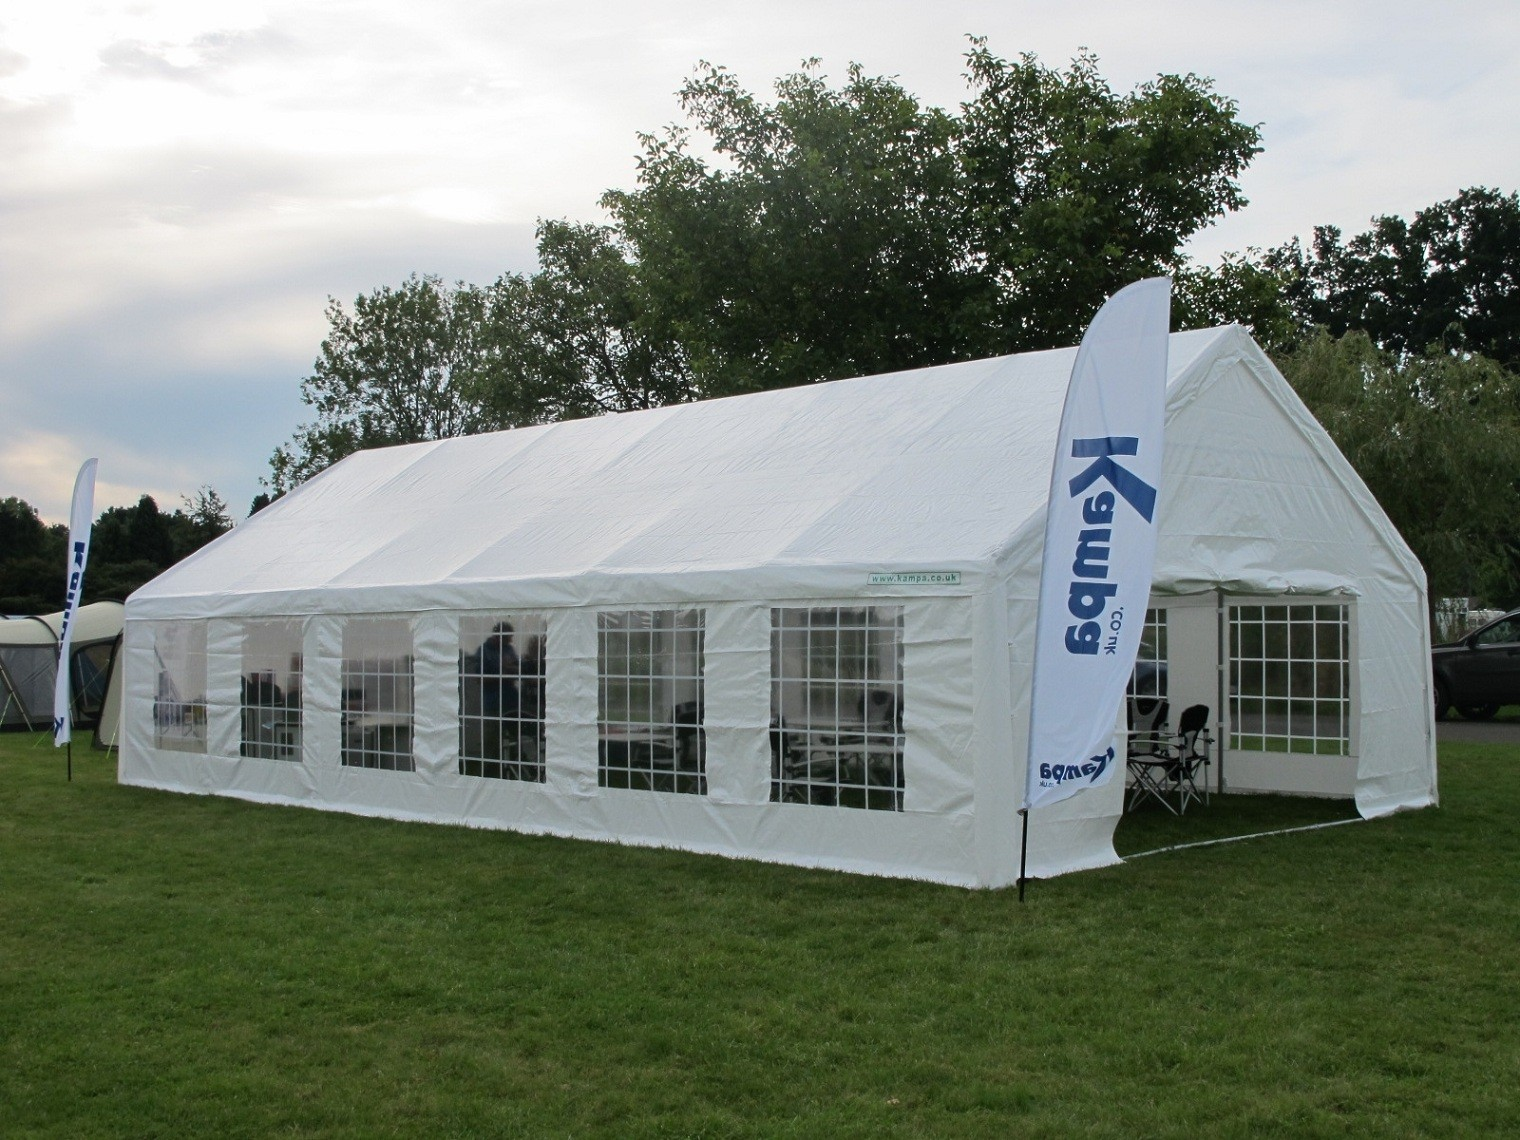 kampa original party tent 4m x 8m by kampa for. Black Bedroom Furniture Sets. Home Design Ideas